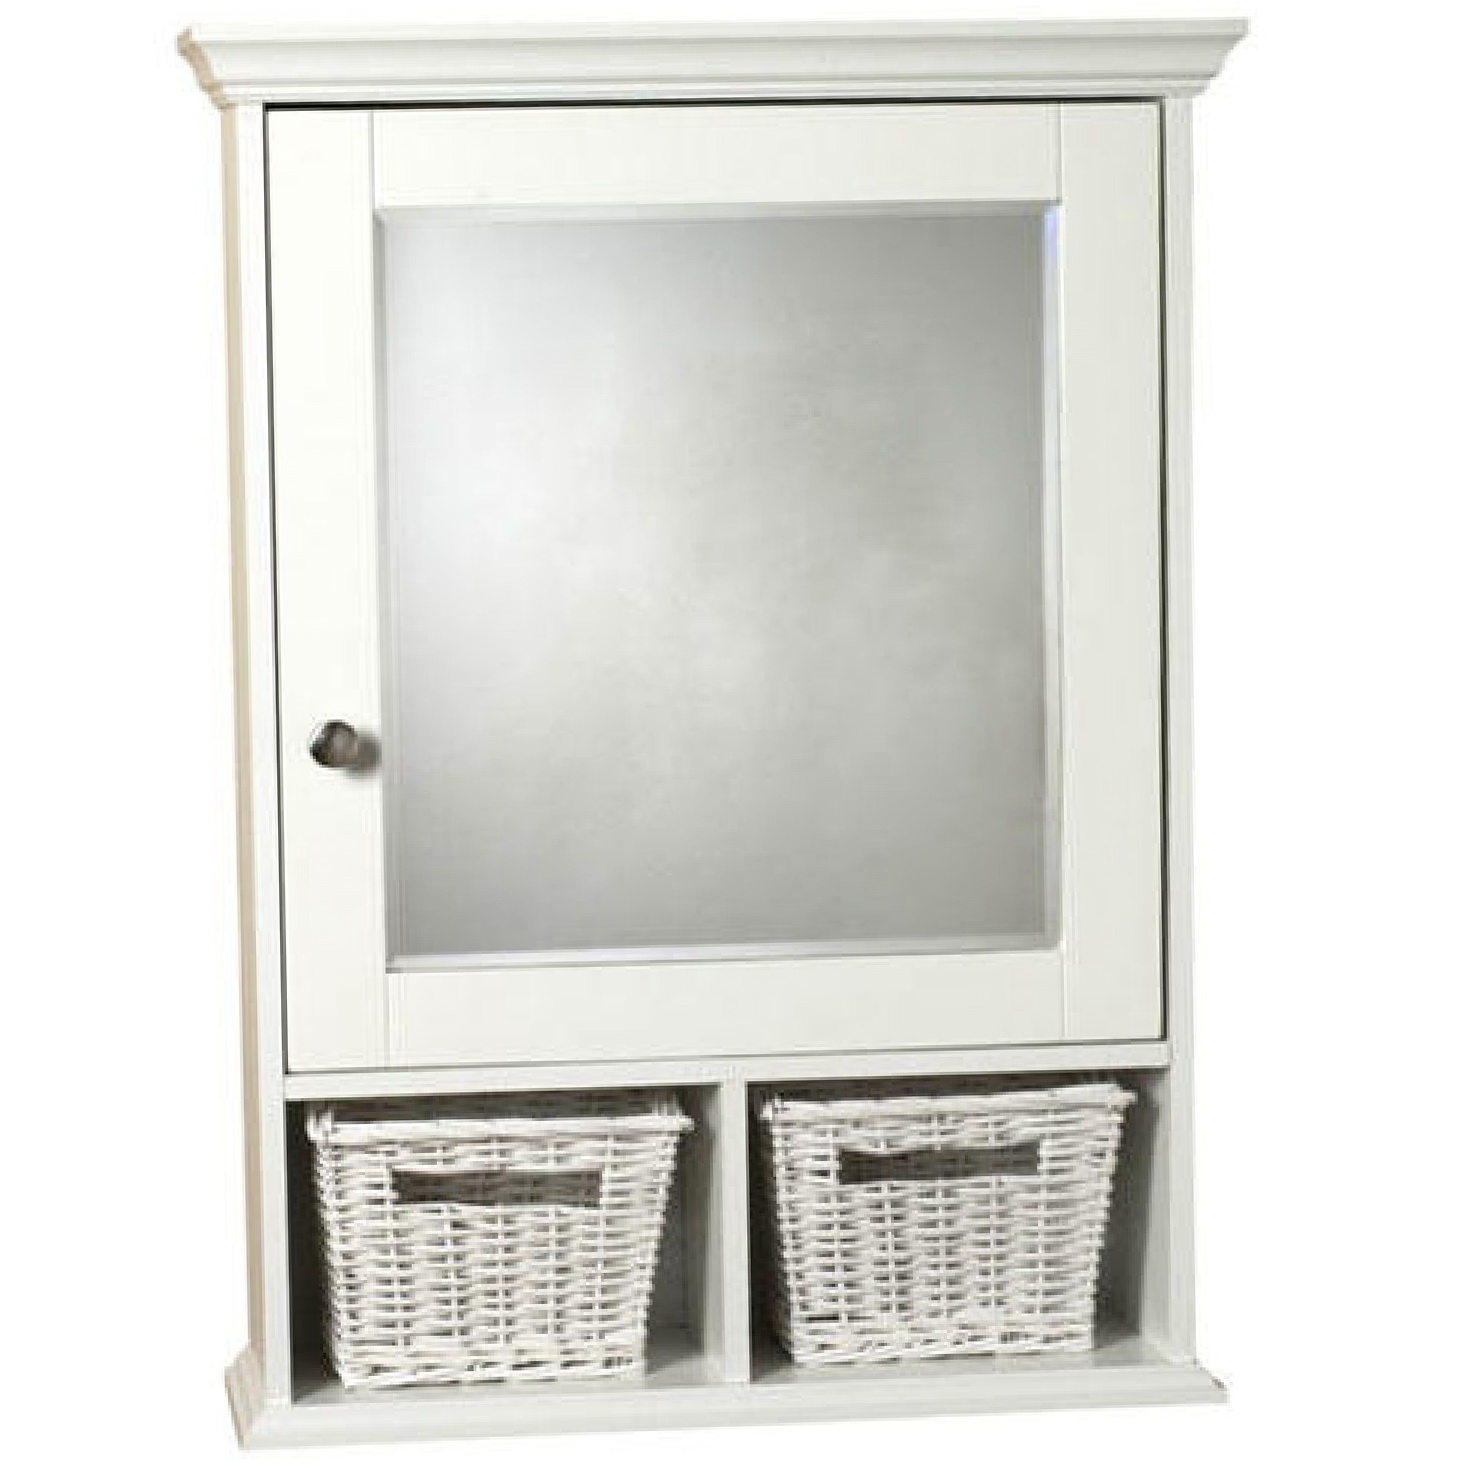 Bathroom Medicine Cabinets With Mirrors Lowes